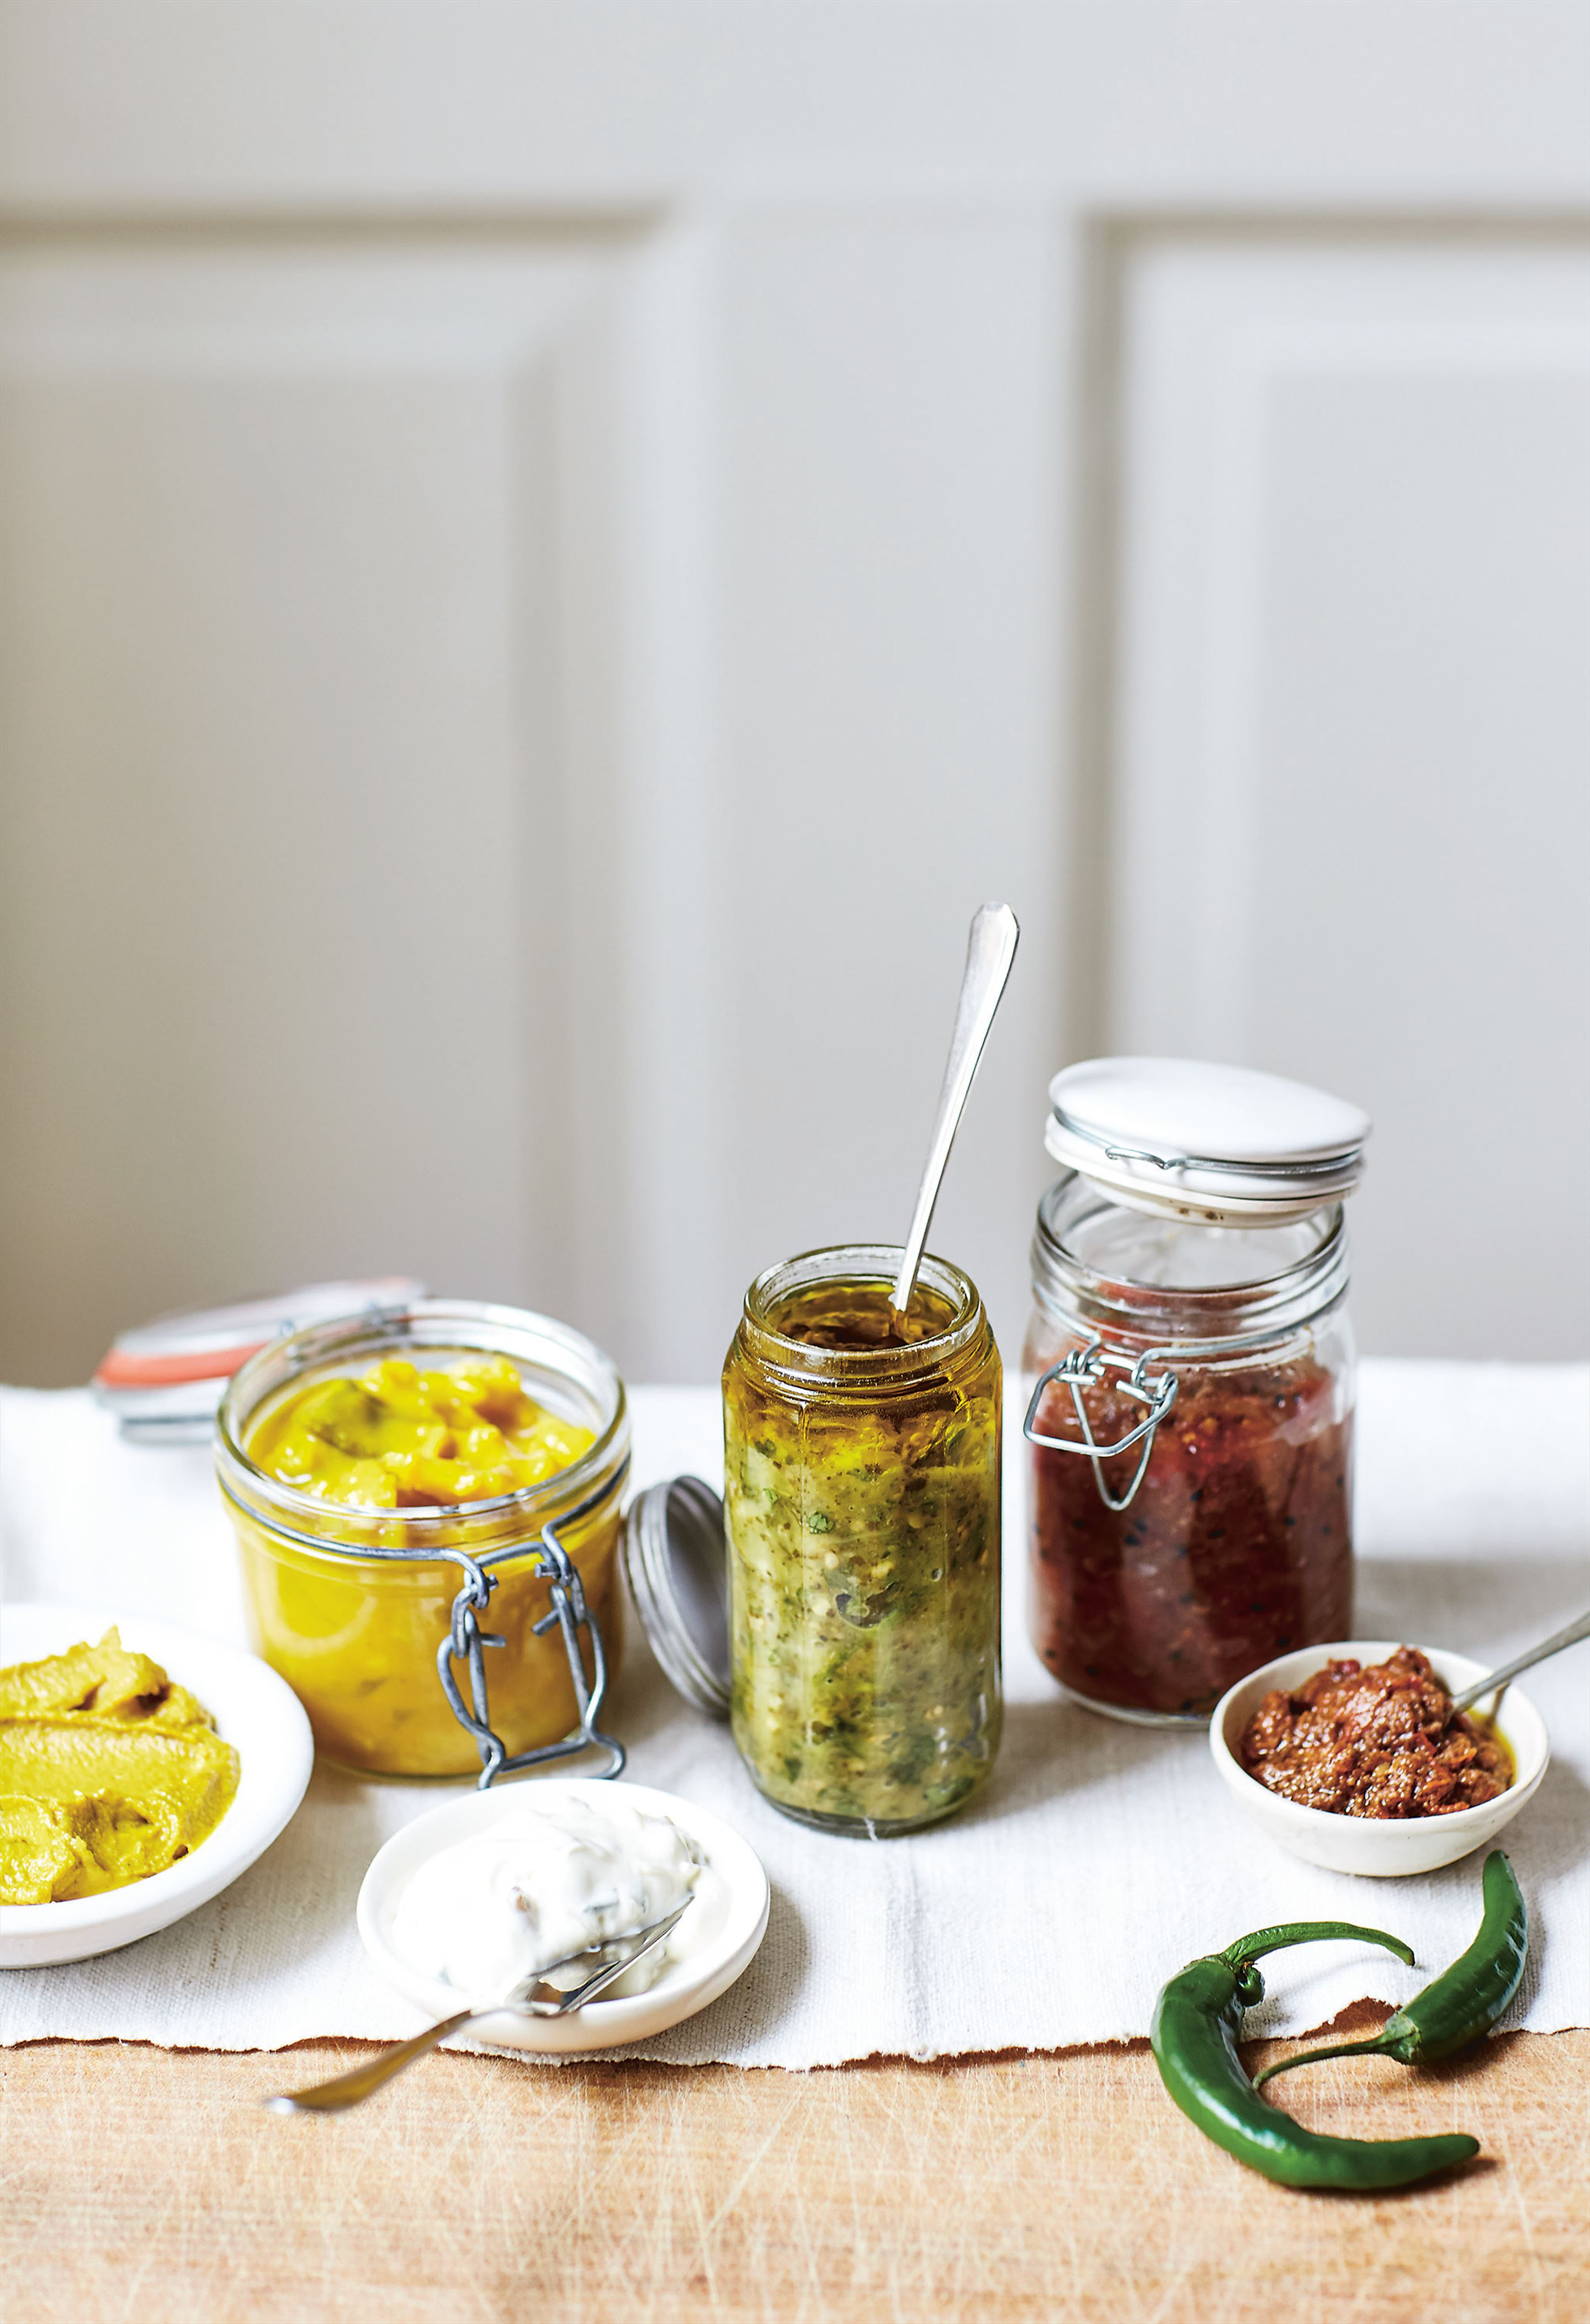 Sundried tomato and green olive tapenade